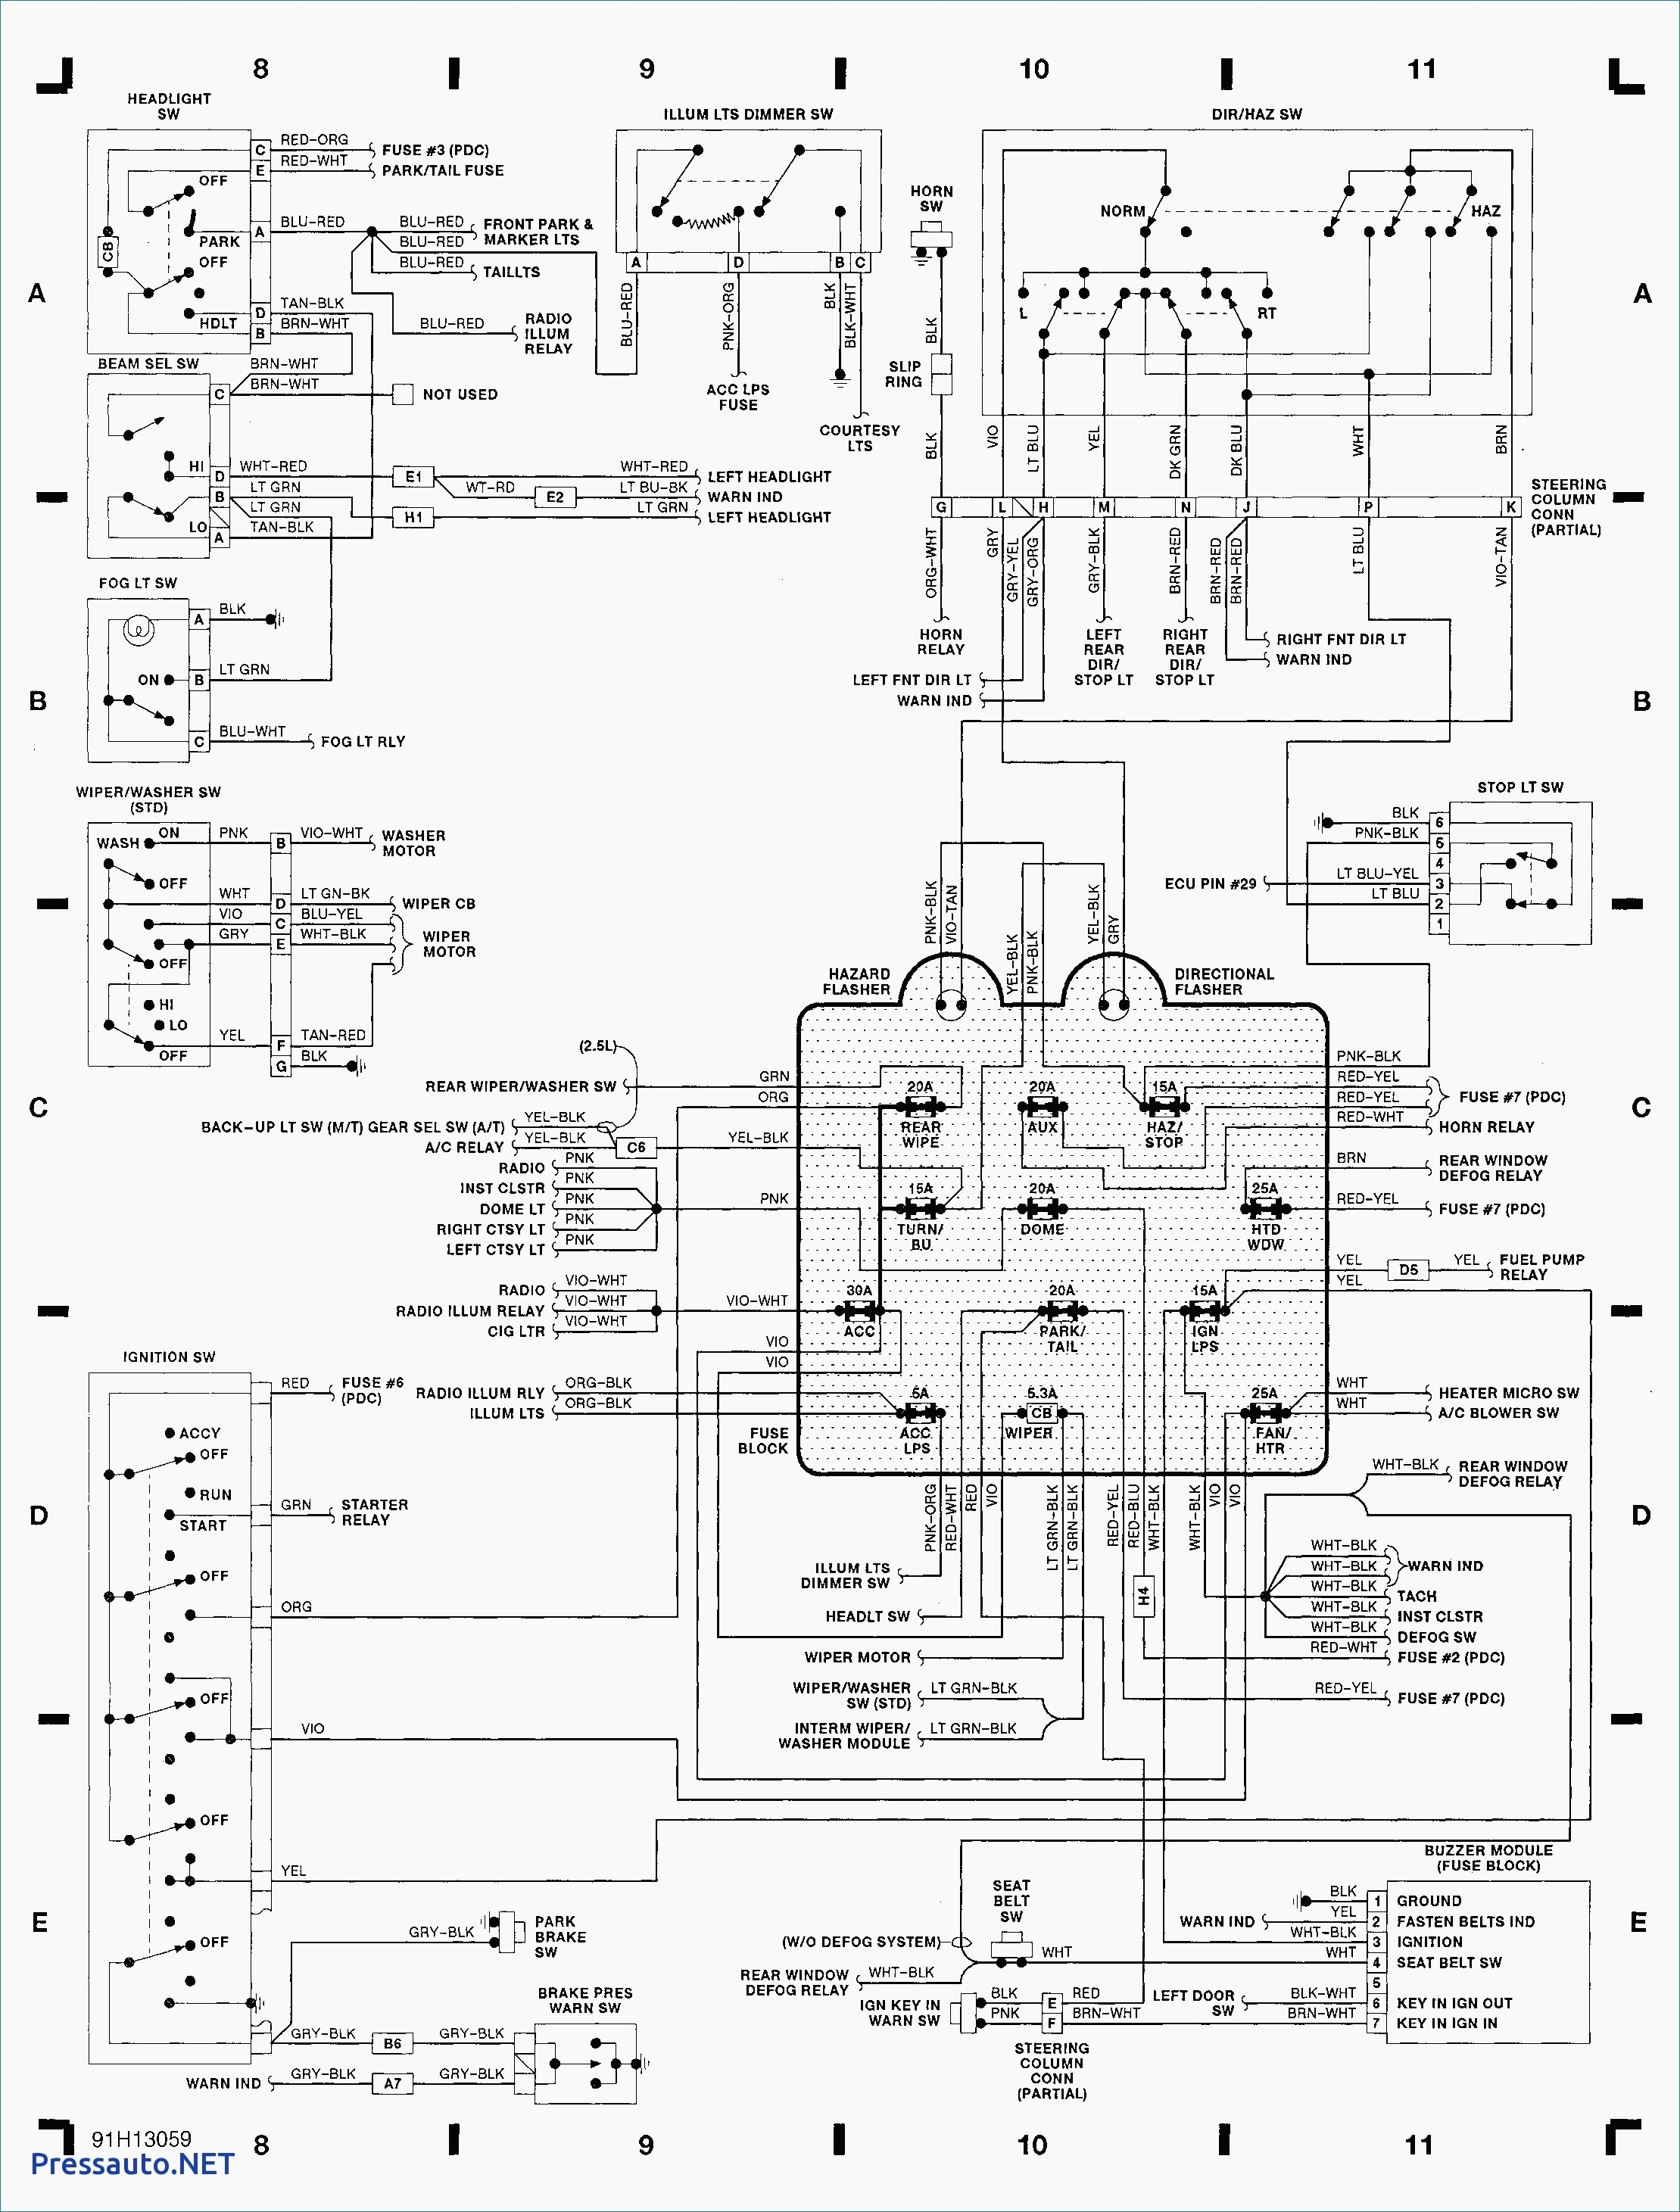 [DIAGRAM] 1995 Yj Wiring Diagram FULL Version HD Quality